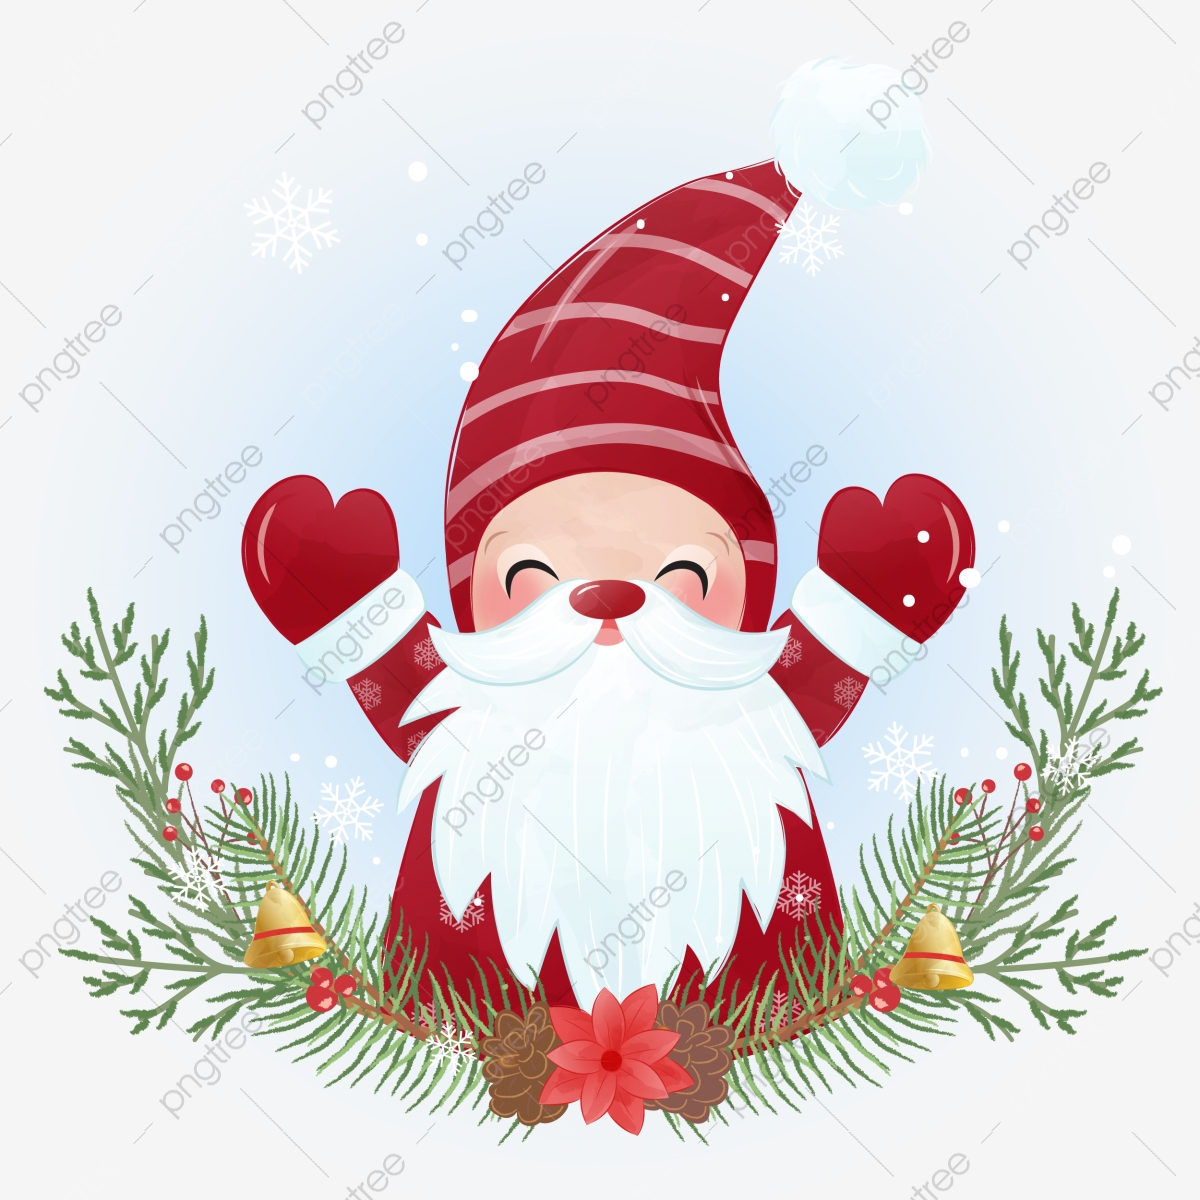 Gnome For Christmas Background And Greeting Card Gnome Clipart Holiday Background Png And Vector With Transparent Background For Free Download